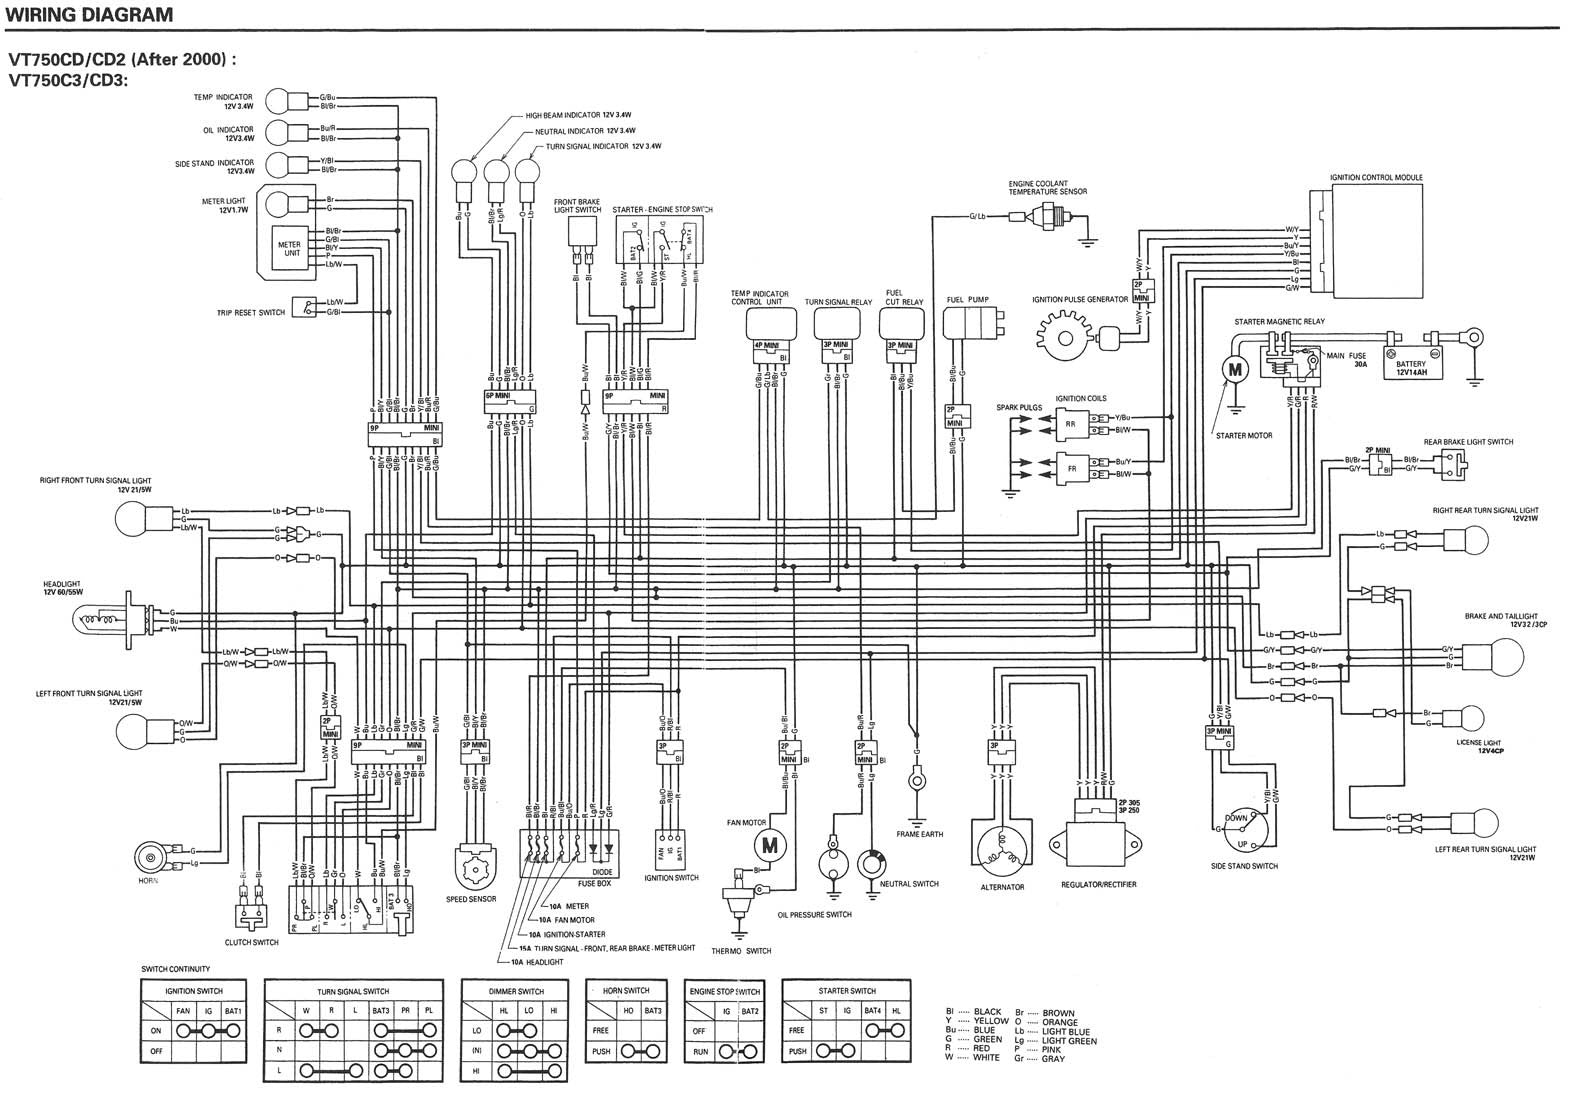 [CSDW_4250]   8802 2008 Honda Cbr600rr Wiring Diagram | Wiring Resources | Honda Cbr Wiring Diagram |  | Wiring Resources